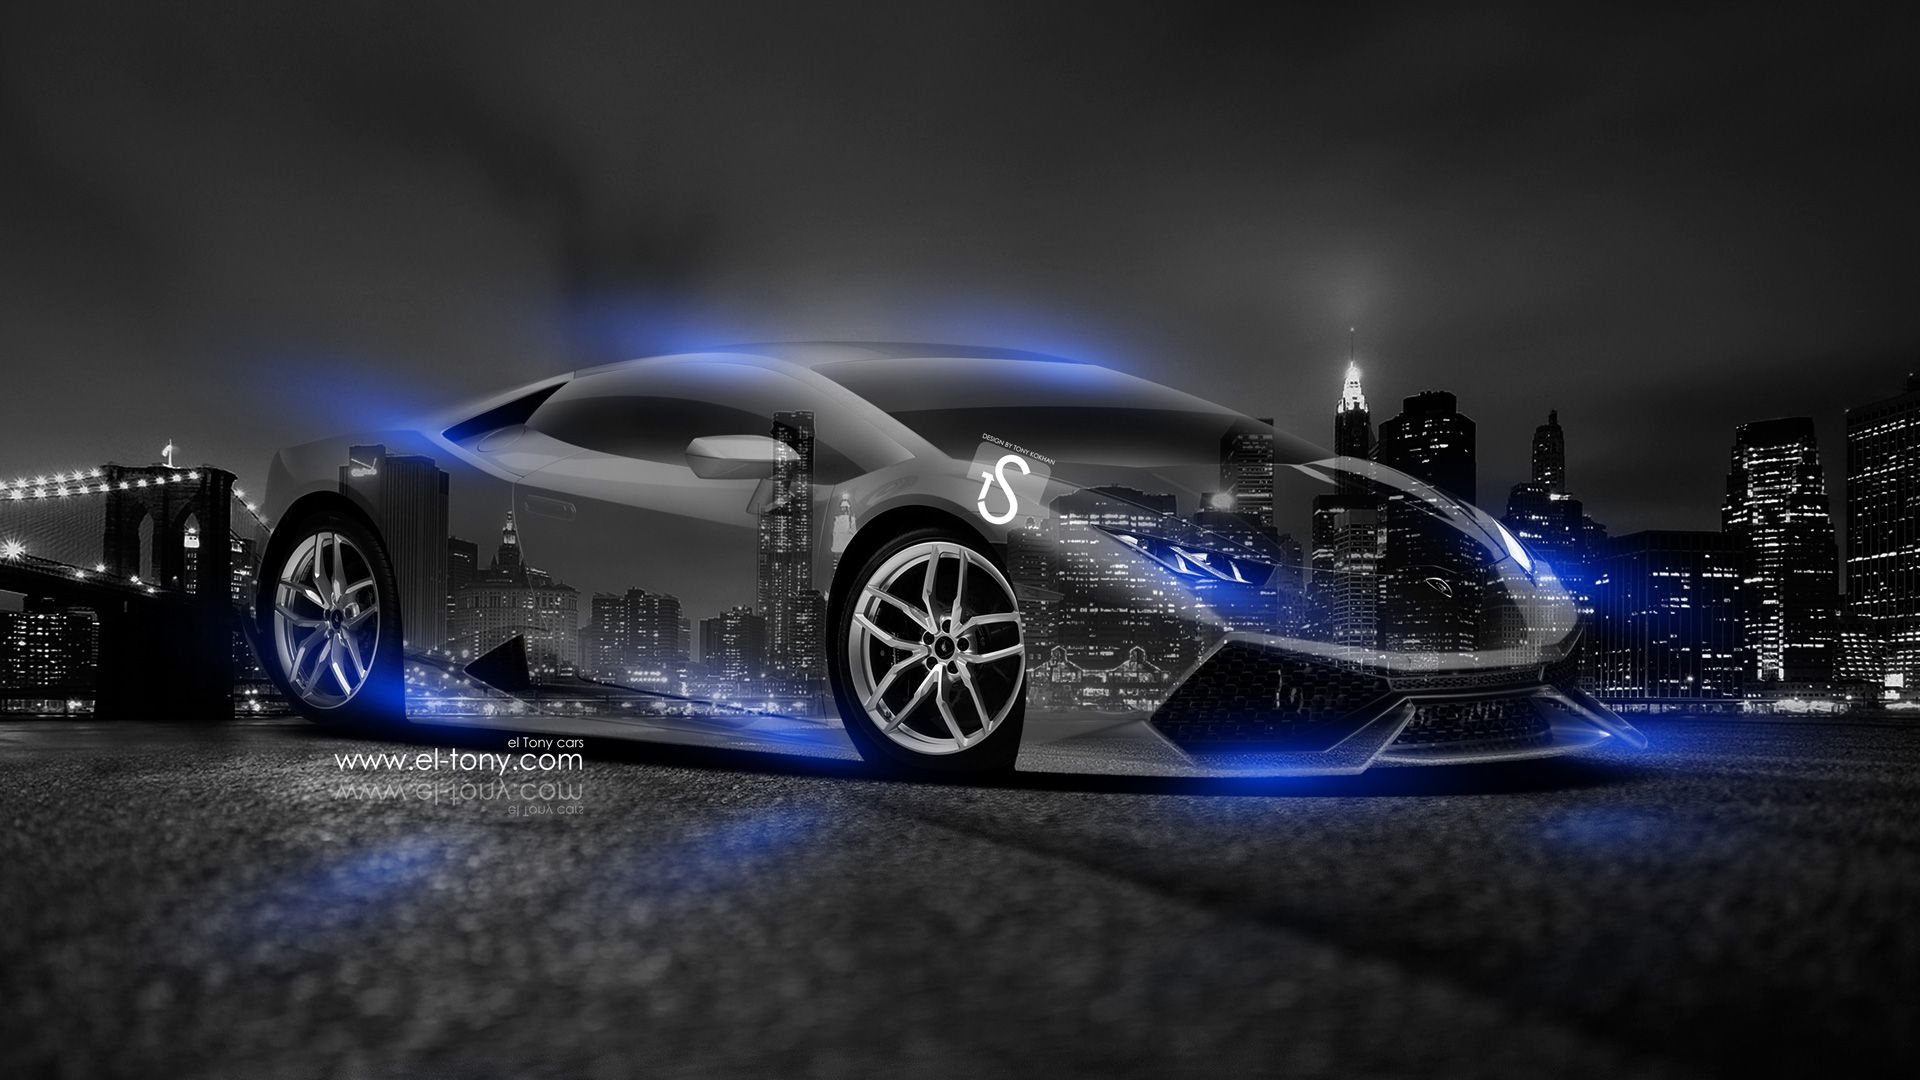 Superieur Black Lamborghini With Neon Blue Lights | Lamborghini Huracan Crystal  City Car